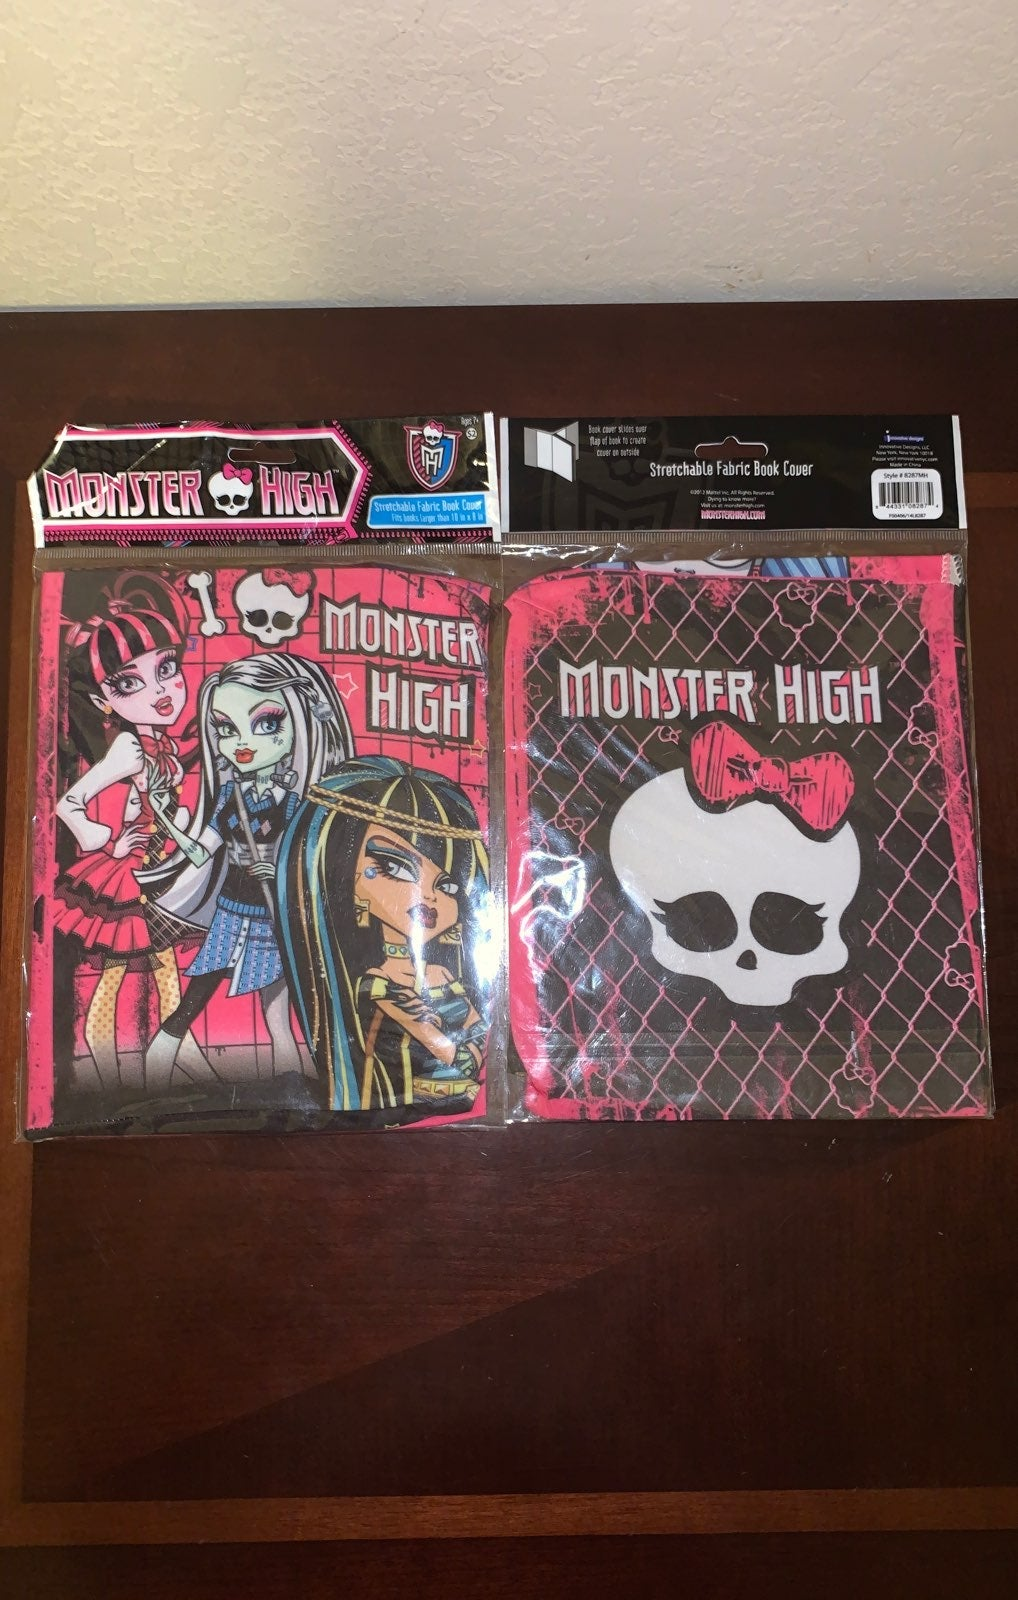 Monster high book cover